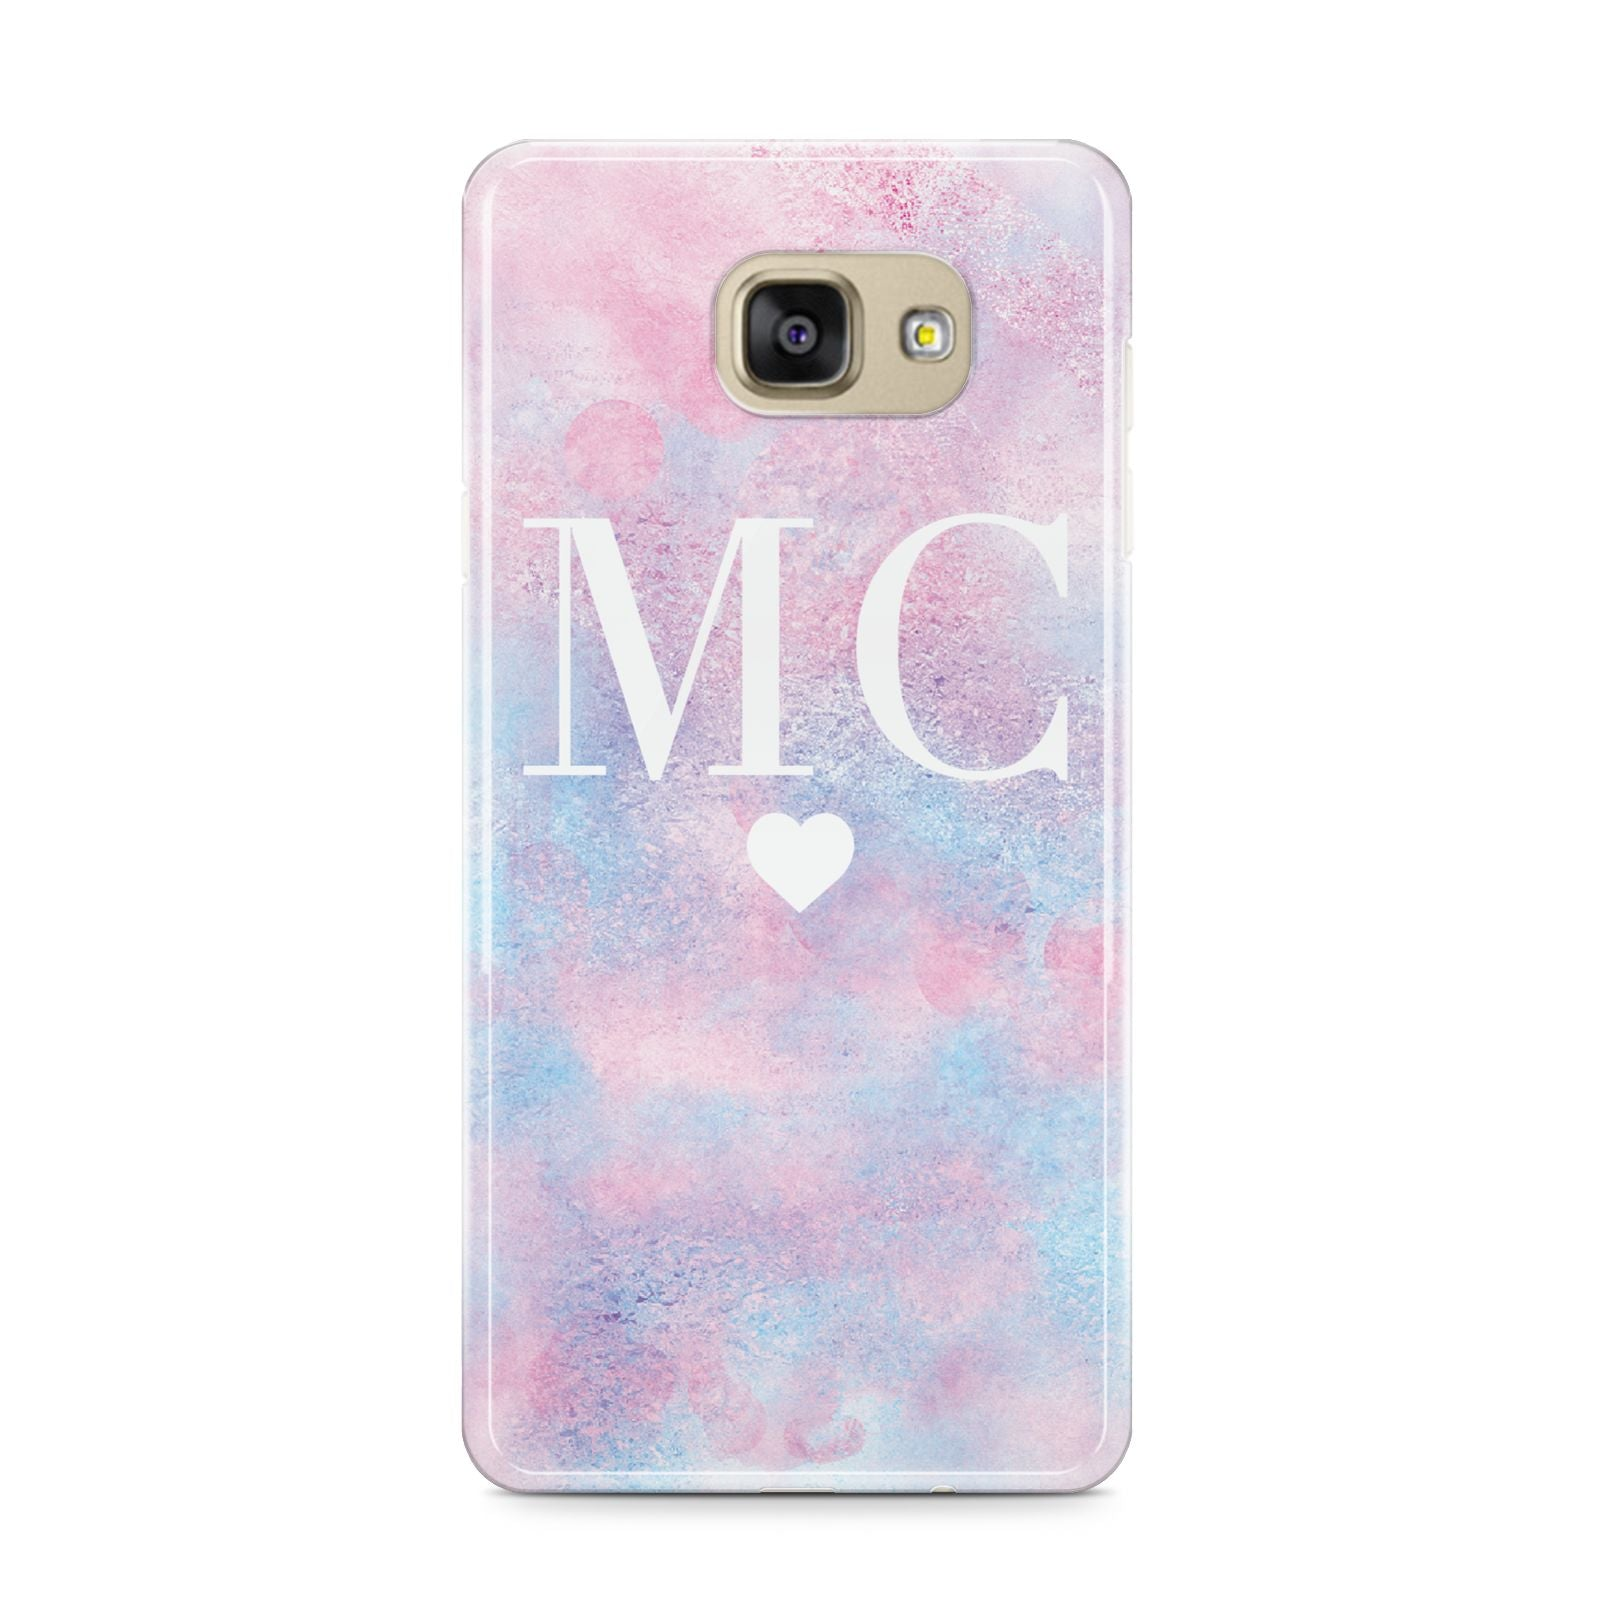 Personalised Cotton Candy Marble Initials Samsung Galaxy A9 2016 Case on gold phone